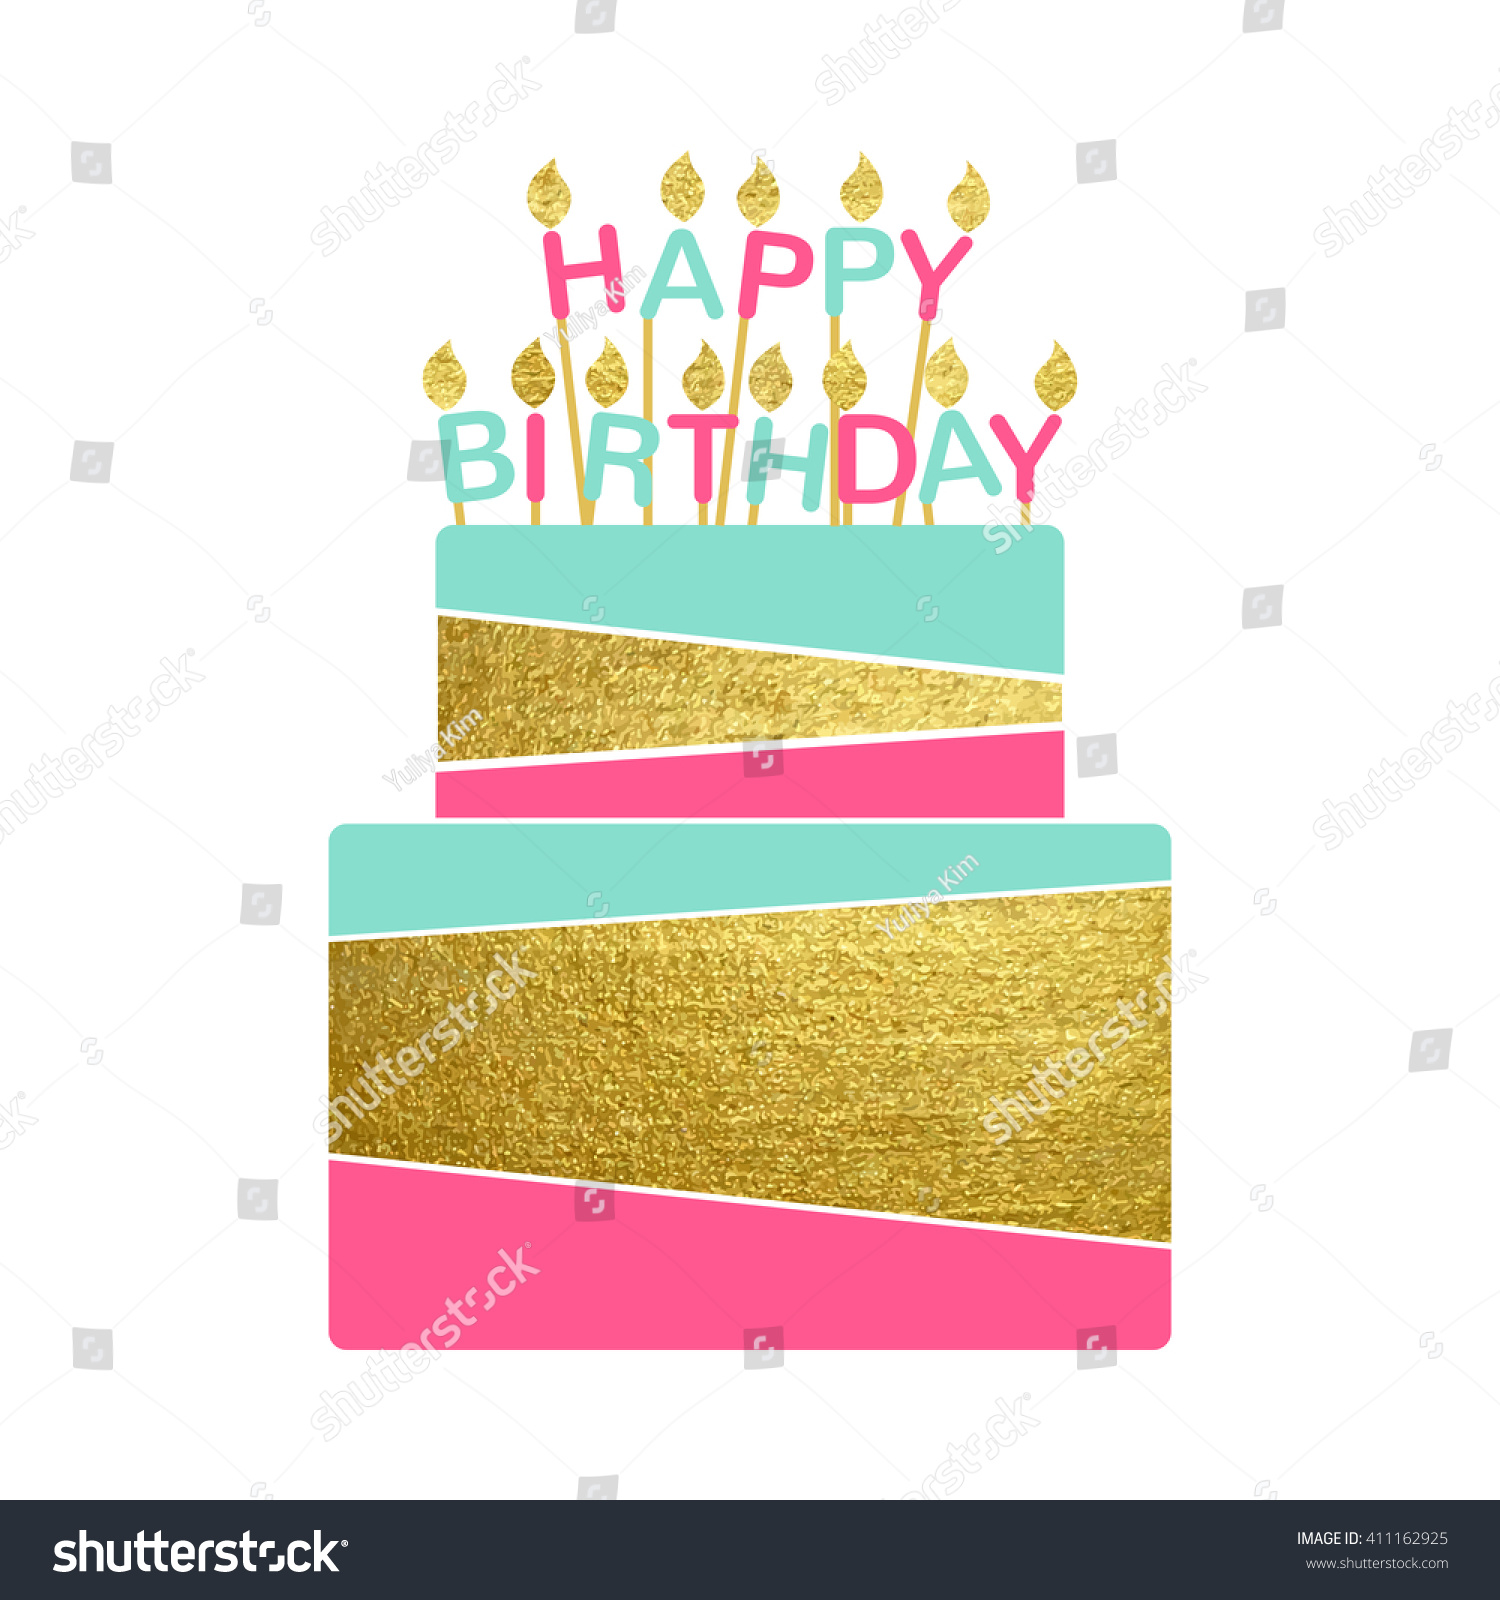 Vector Illustration Of Happy Birthday Cake Card With Candles Gold Paint Foil